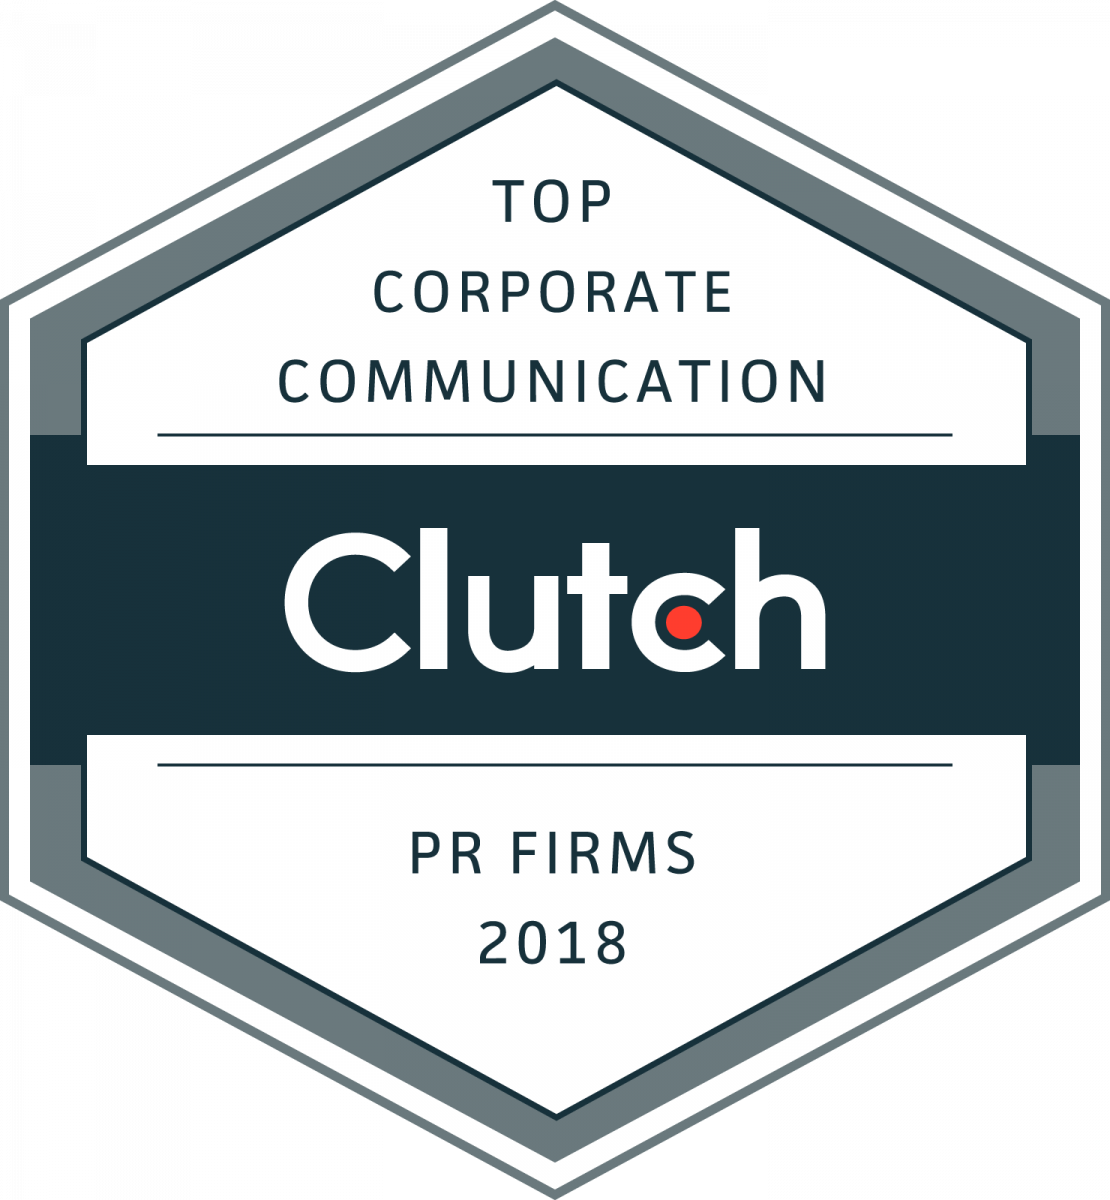 top pr firms for corporate communications in 2018